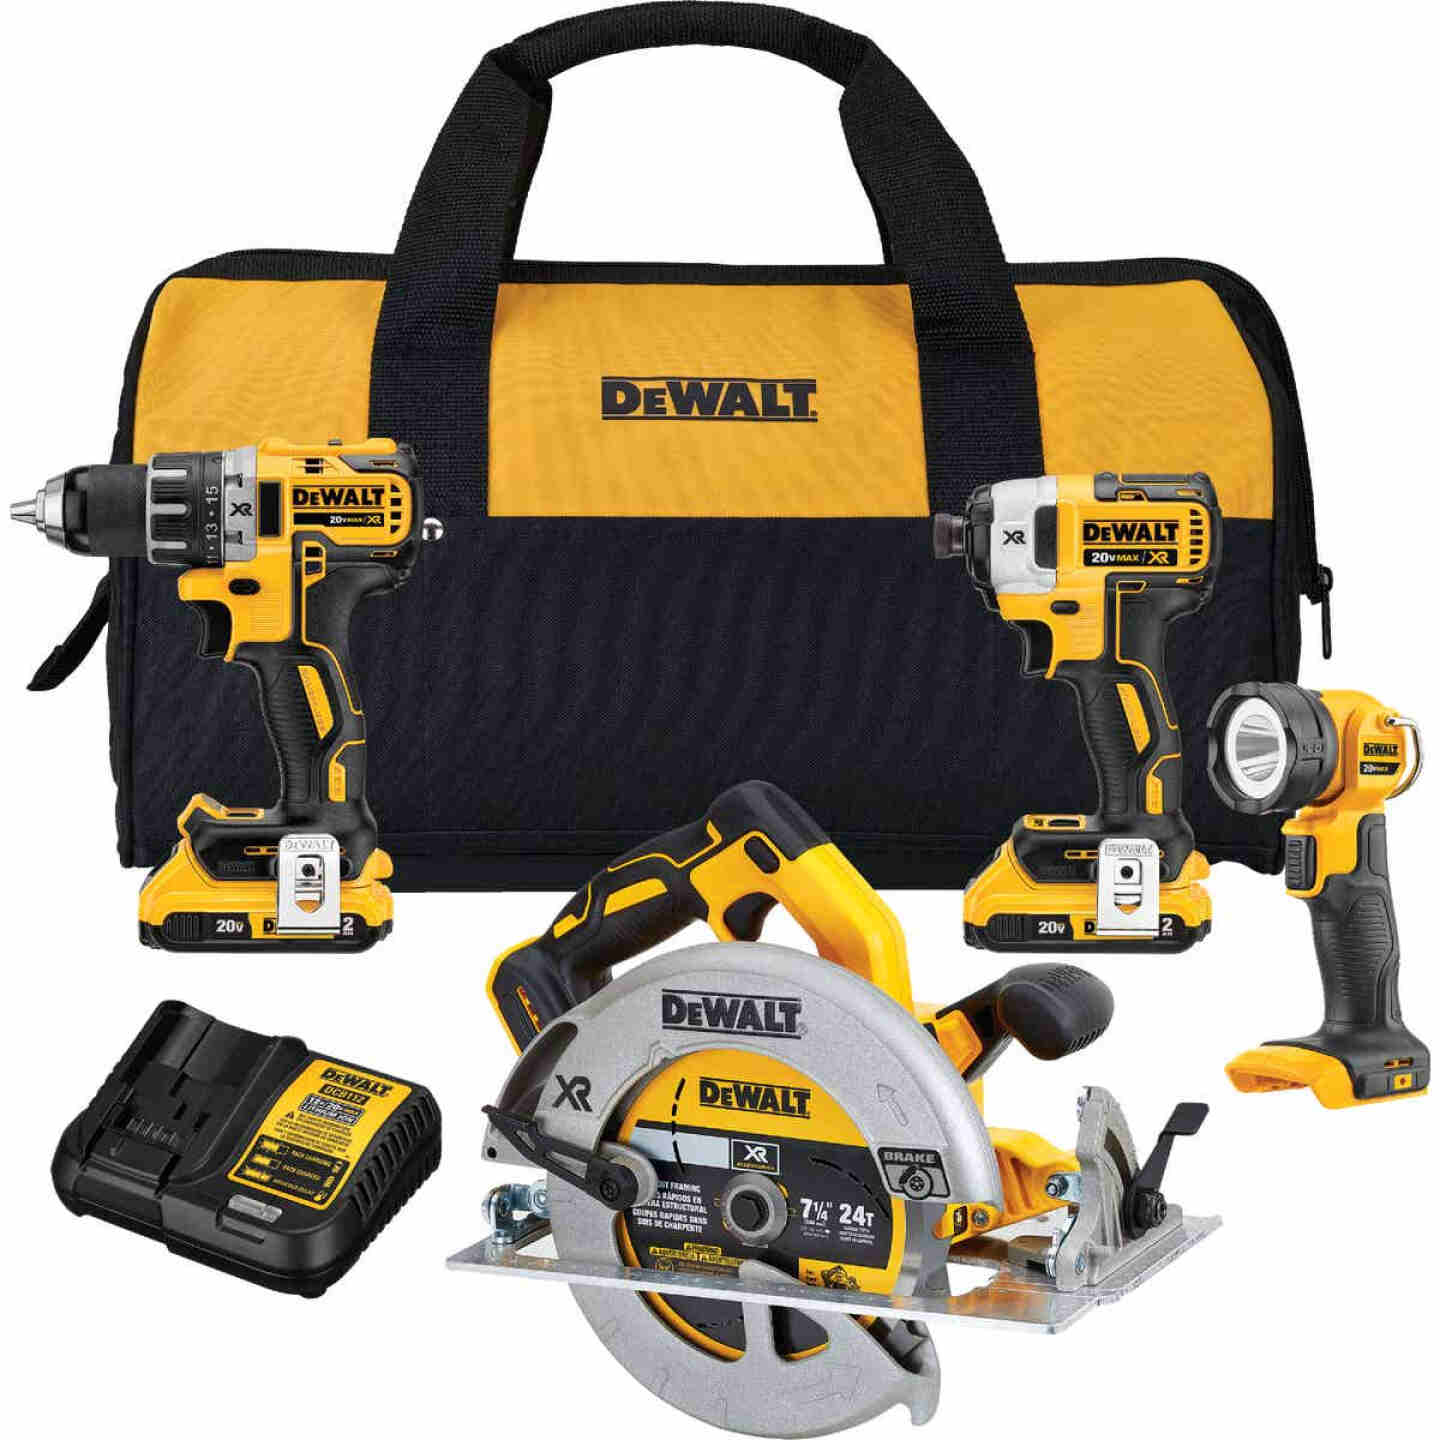 DeWalt 4-Tool 20V MAX XR Lithium-Ion Brushless Compact Drill/Driver, Impact Driver, Circular Saw & Work Light Cordless Tool Combo Kit Image 1